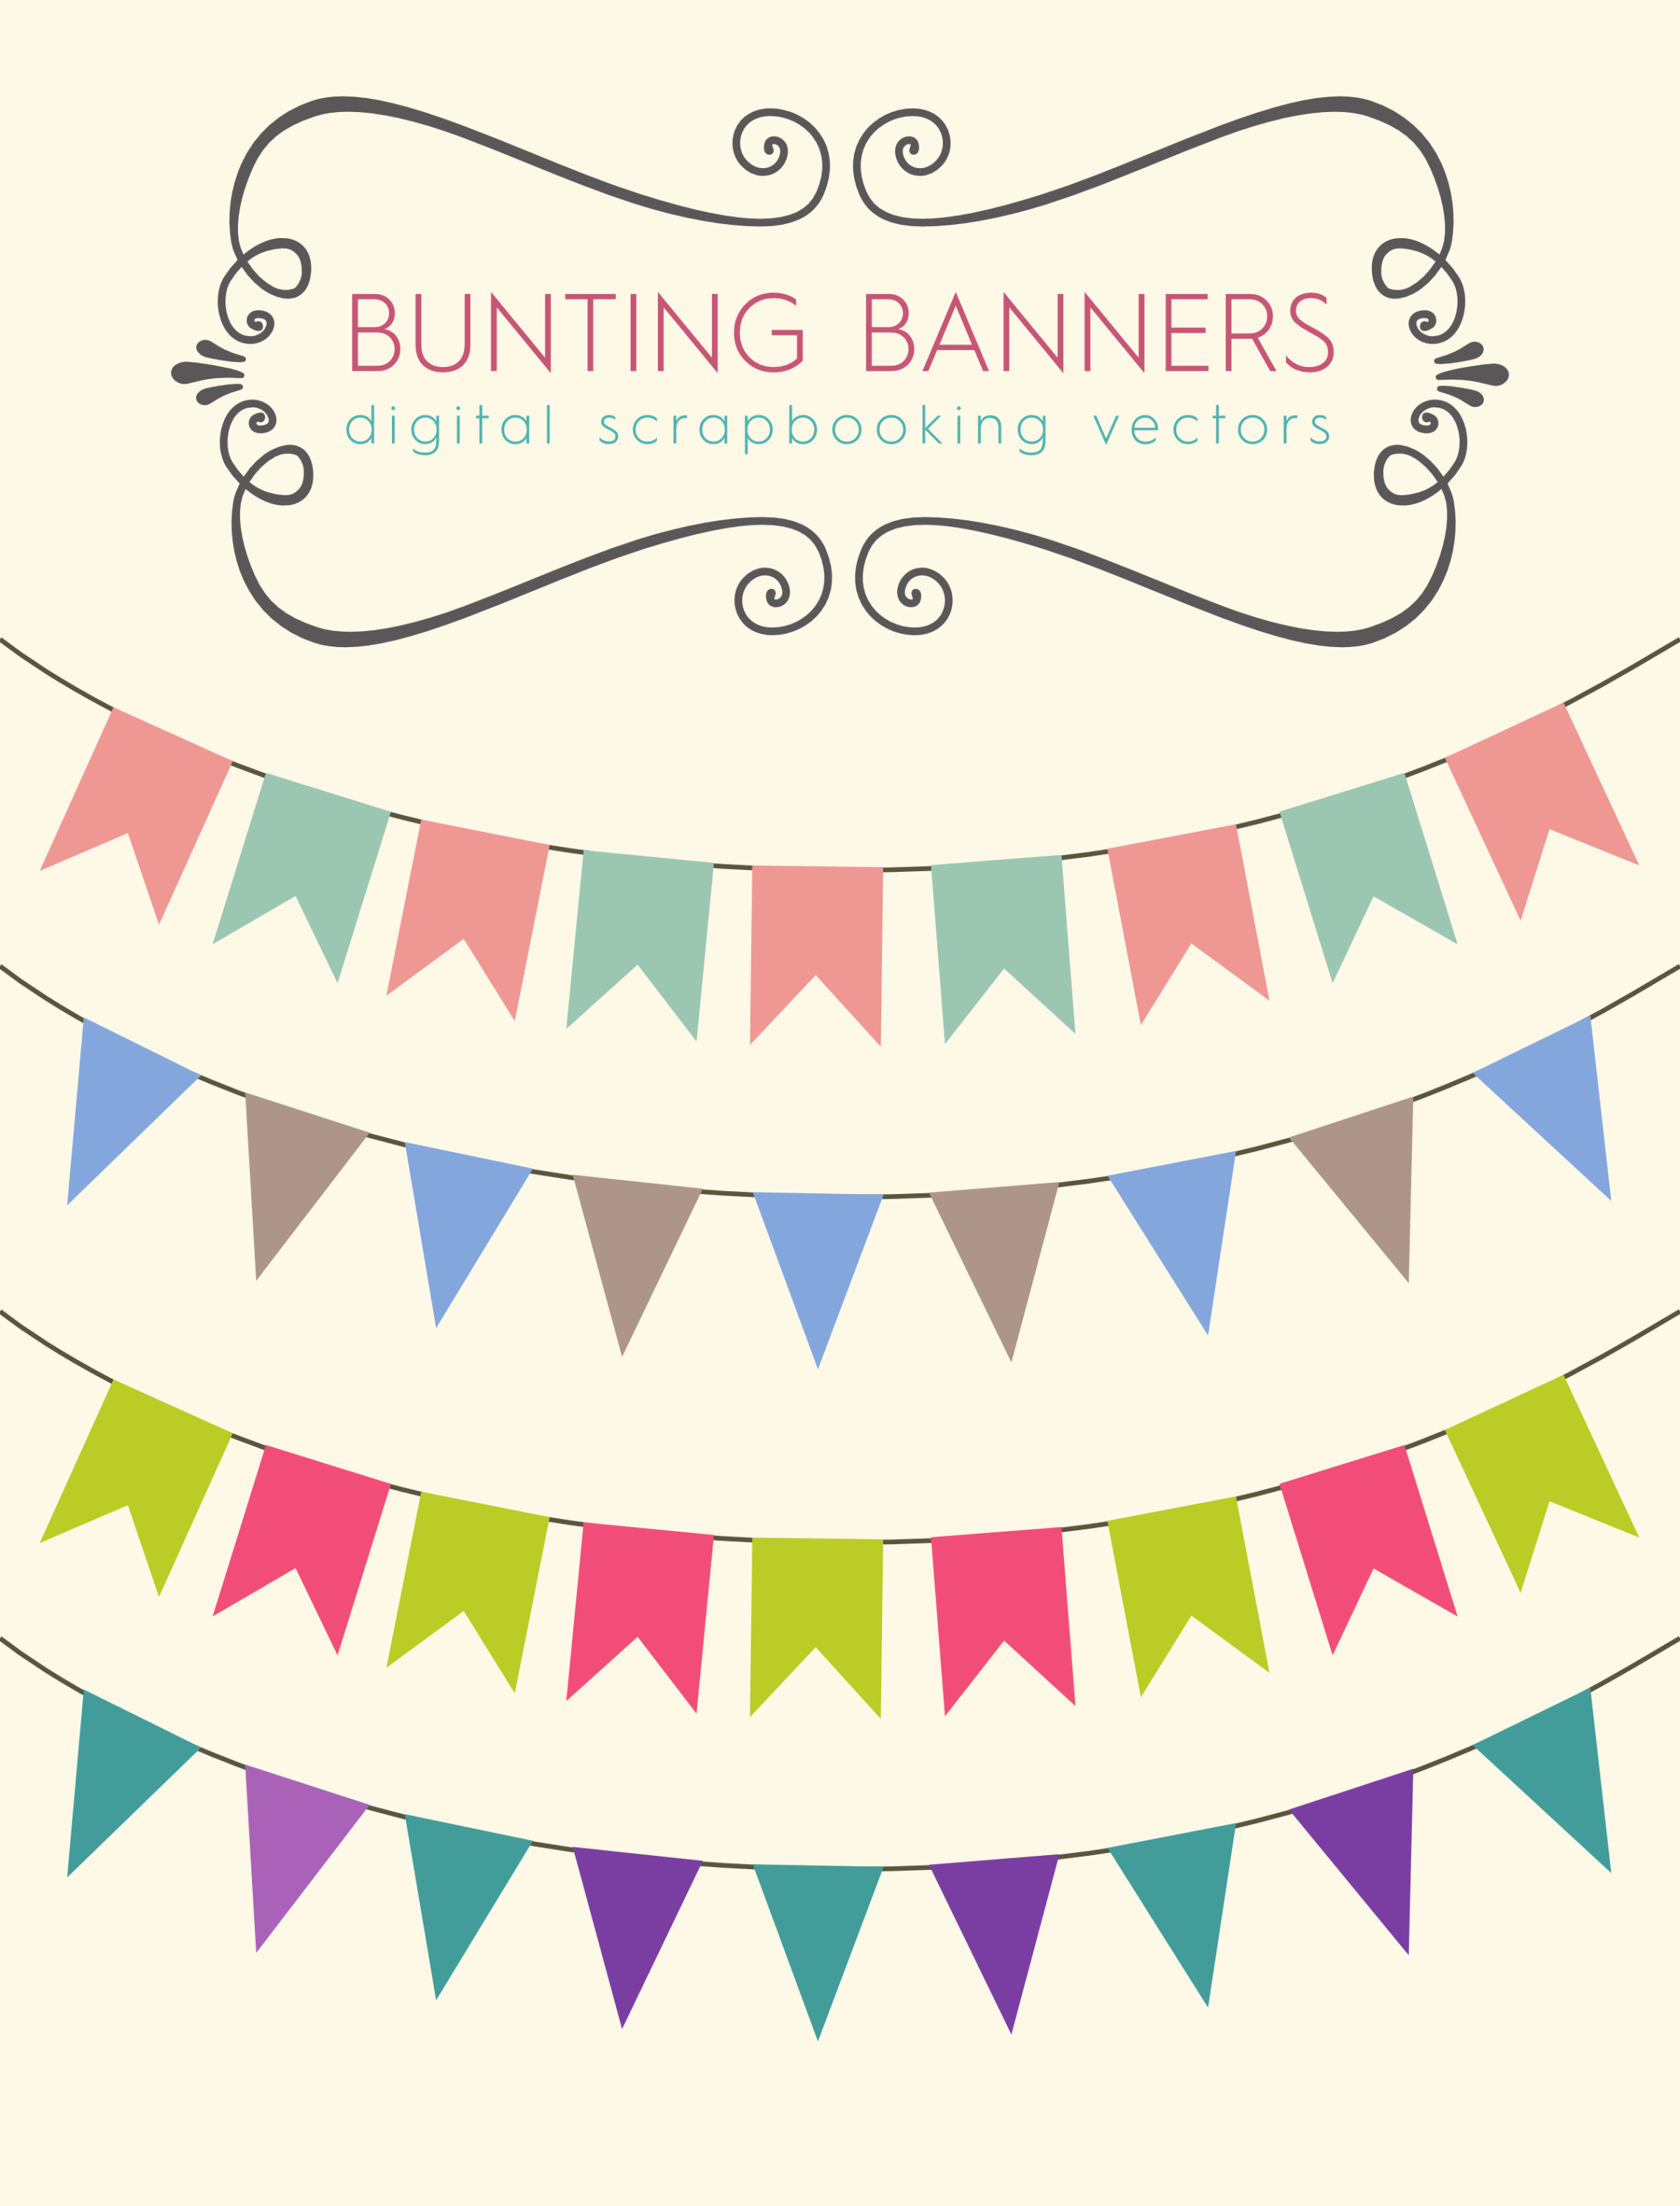 Royalty Free Images Scrapbook Bunting Banners Banner Clip Art Bunting Banner Free Clip Art